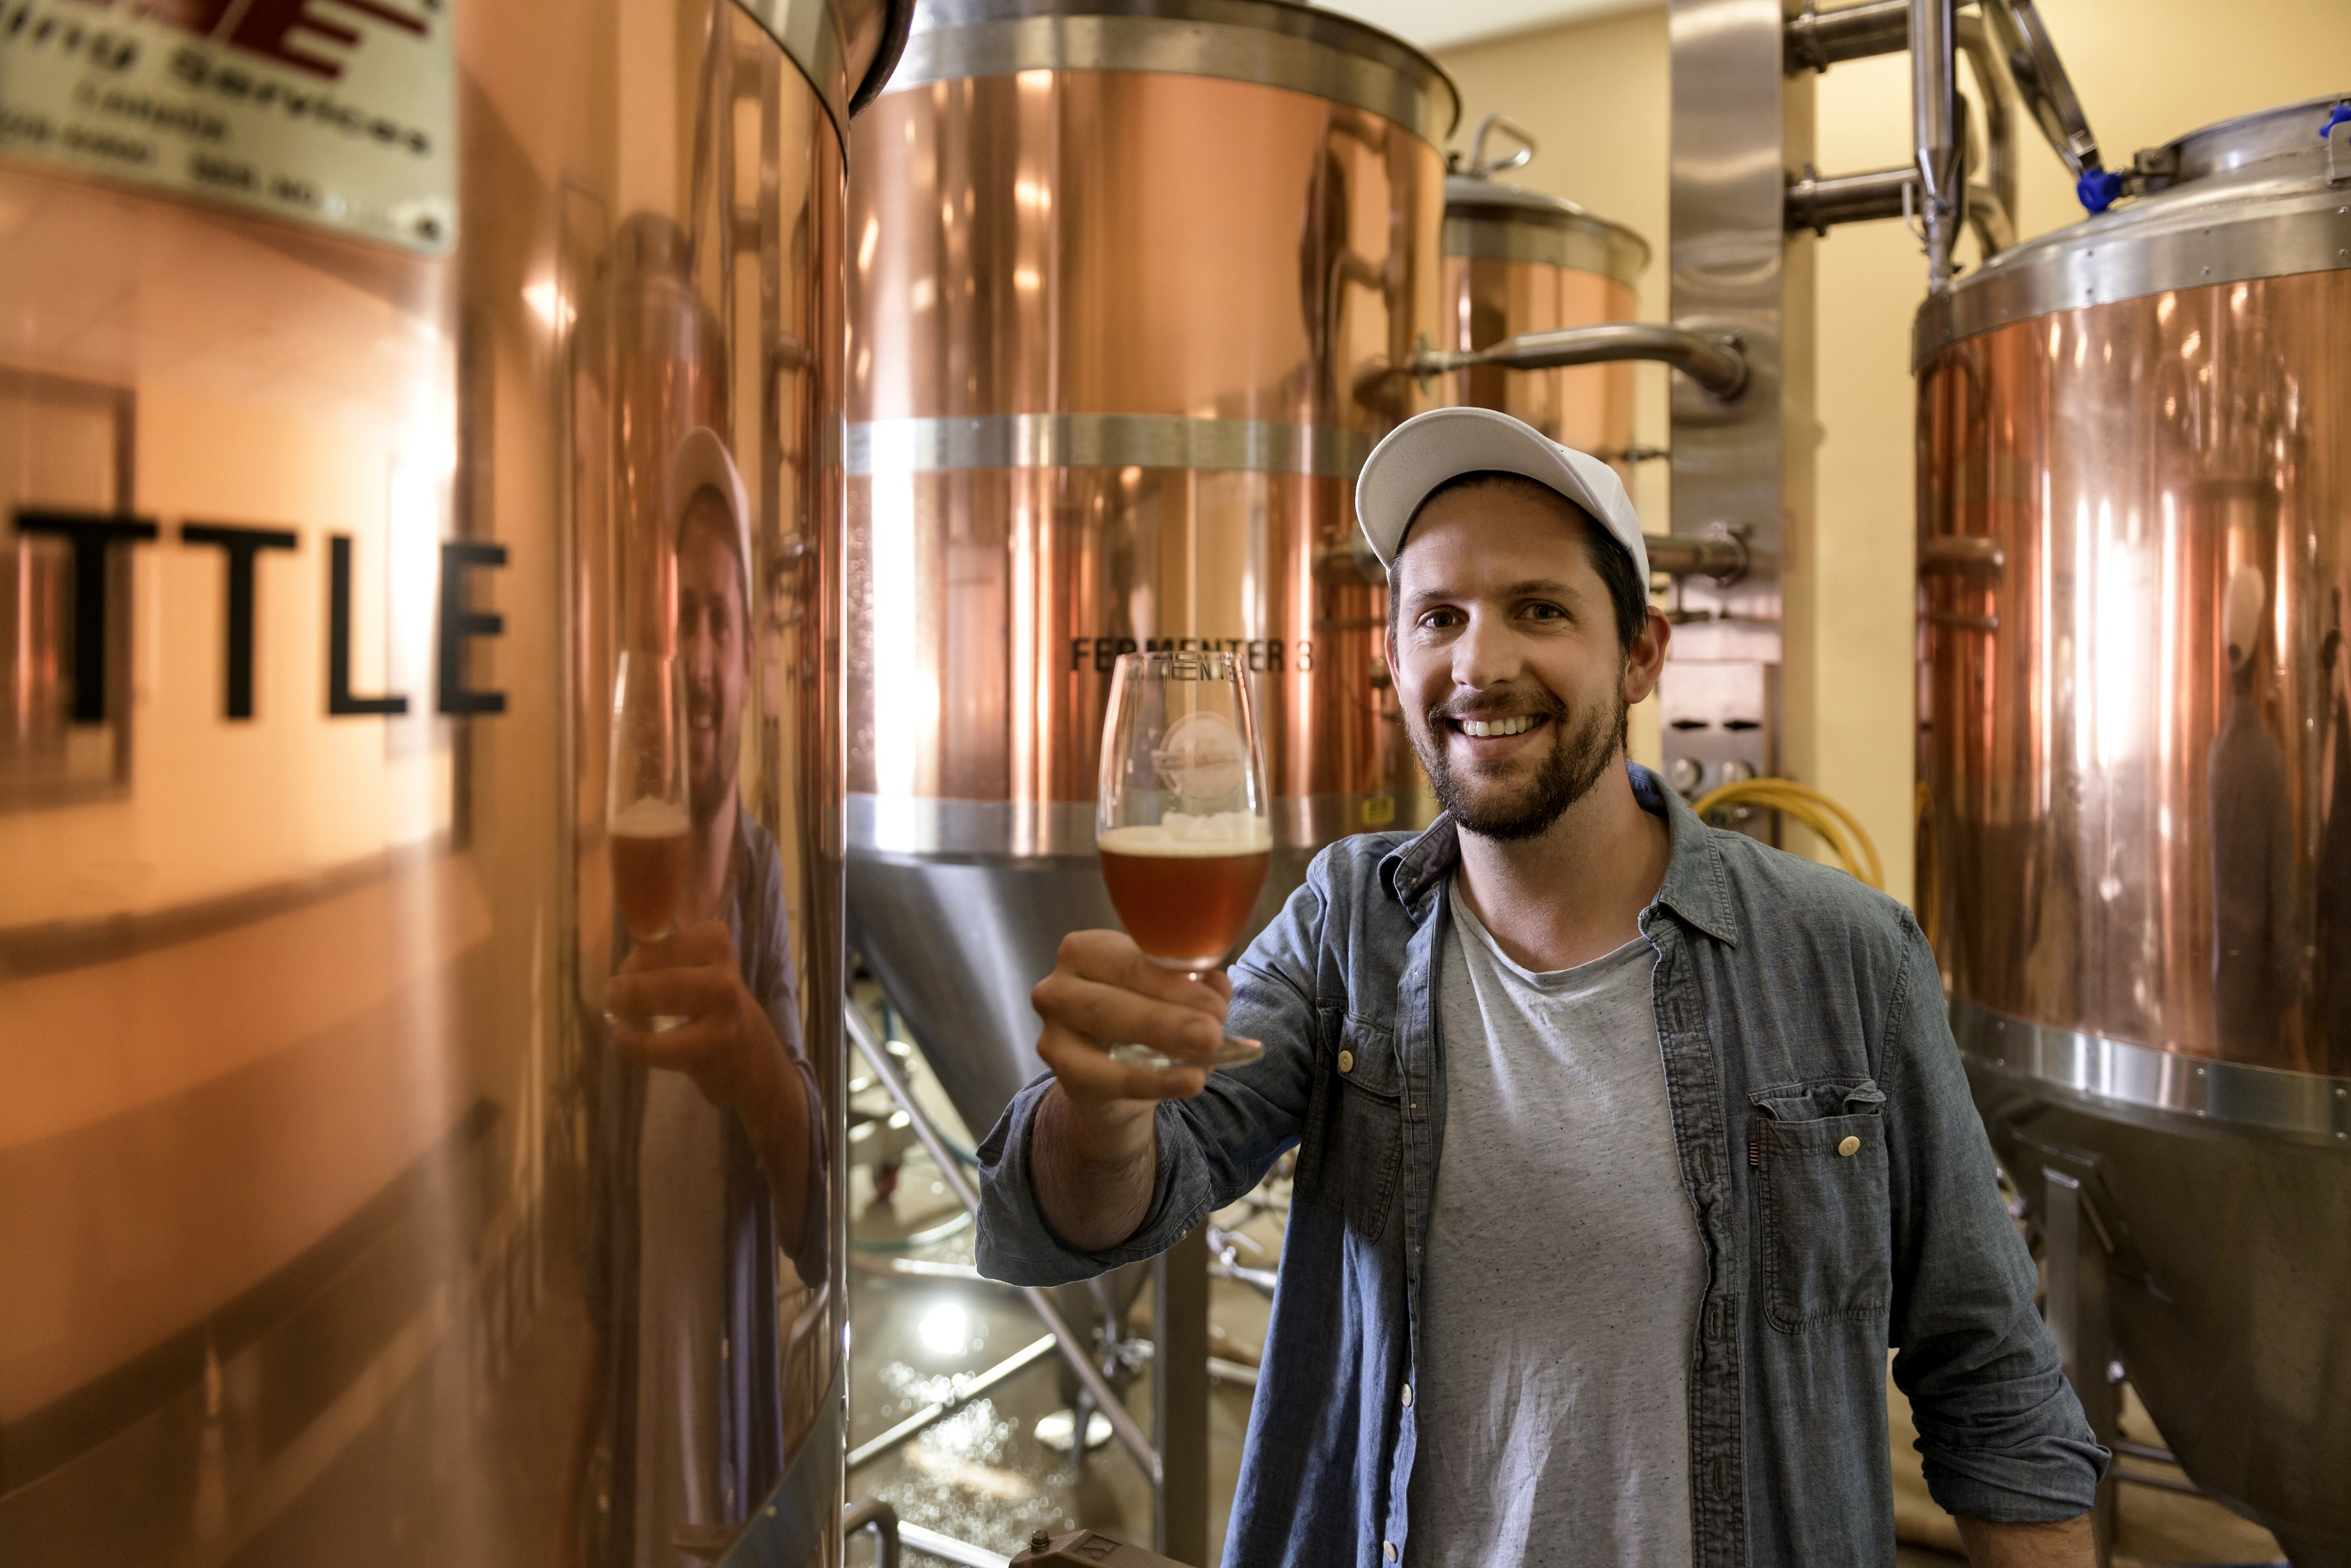 Jonny Bucknall recently completed the Micro Brewing course